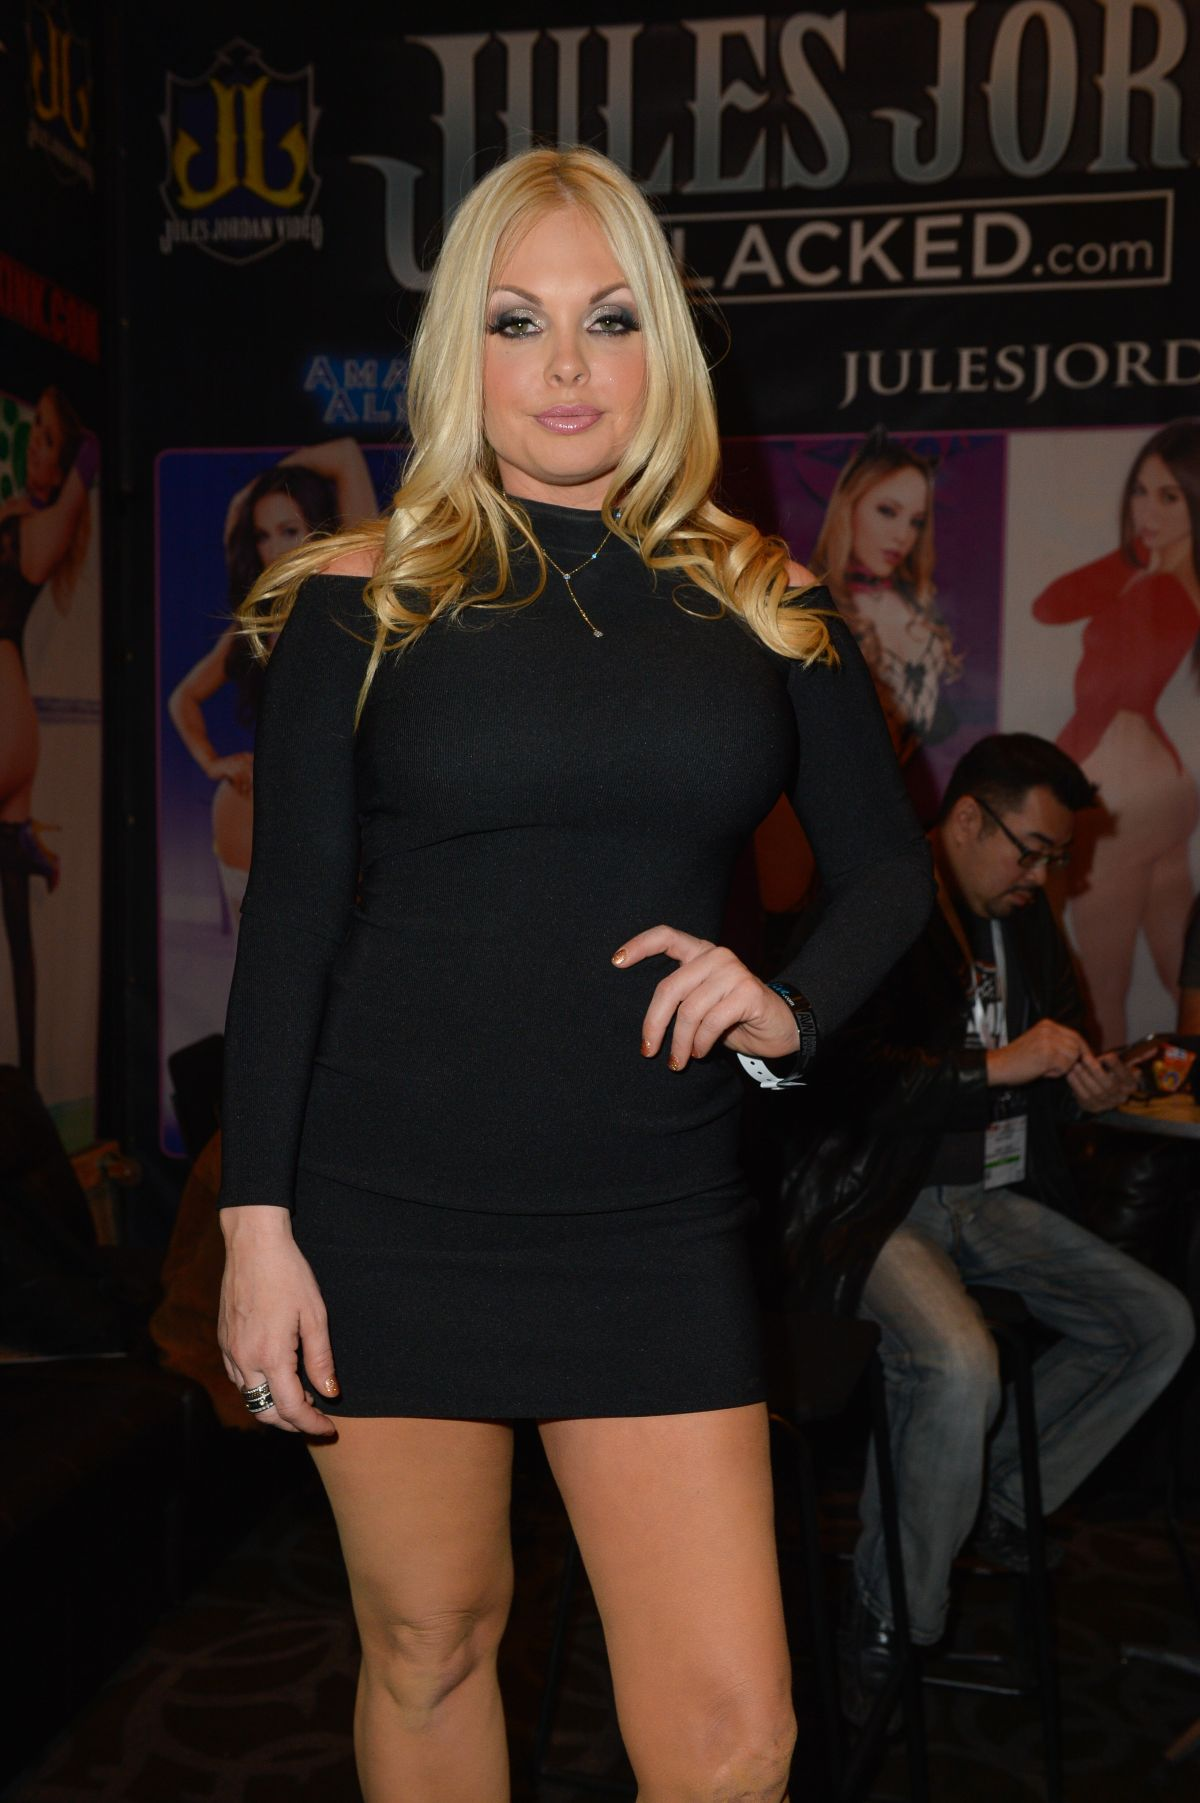 JESSE JANE at AVN Adult Entertainment Expo in Las Vegas 01/20/0016